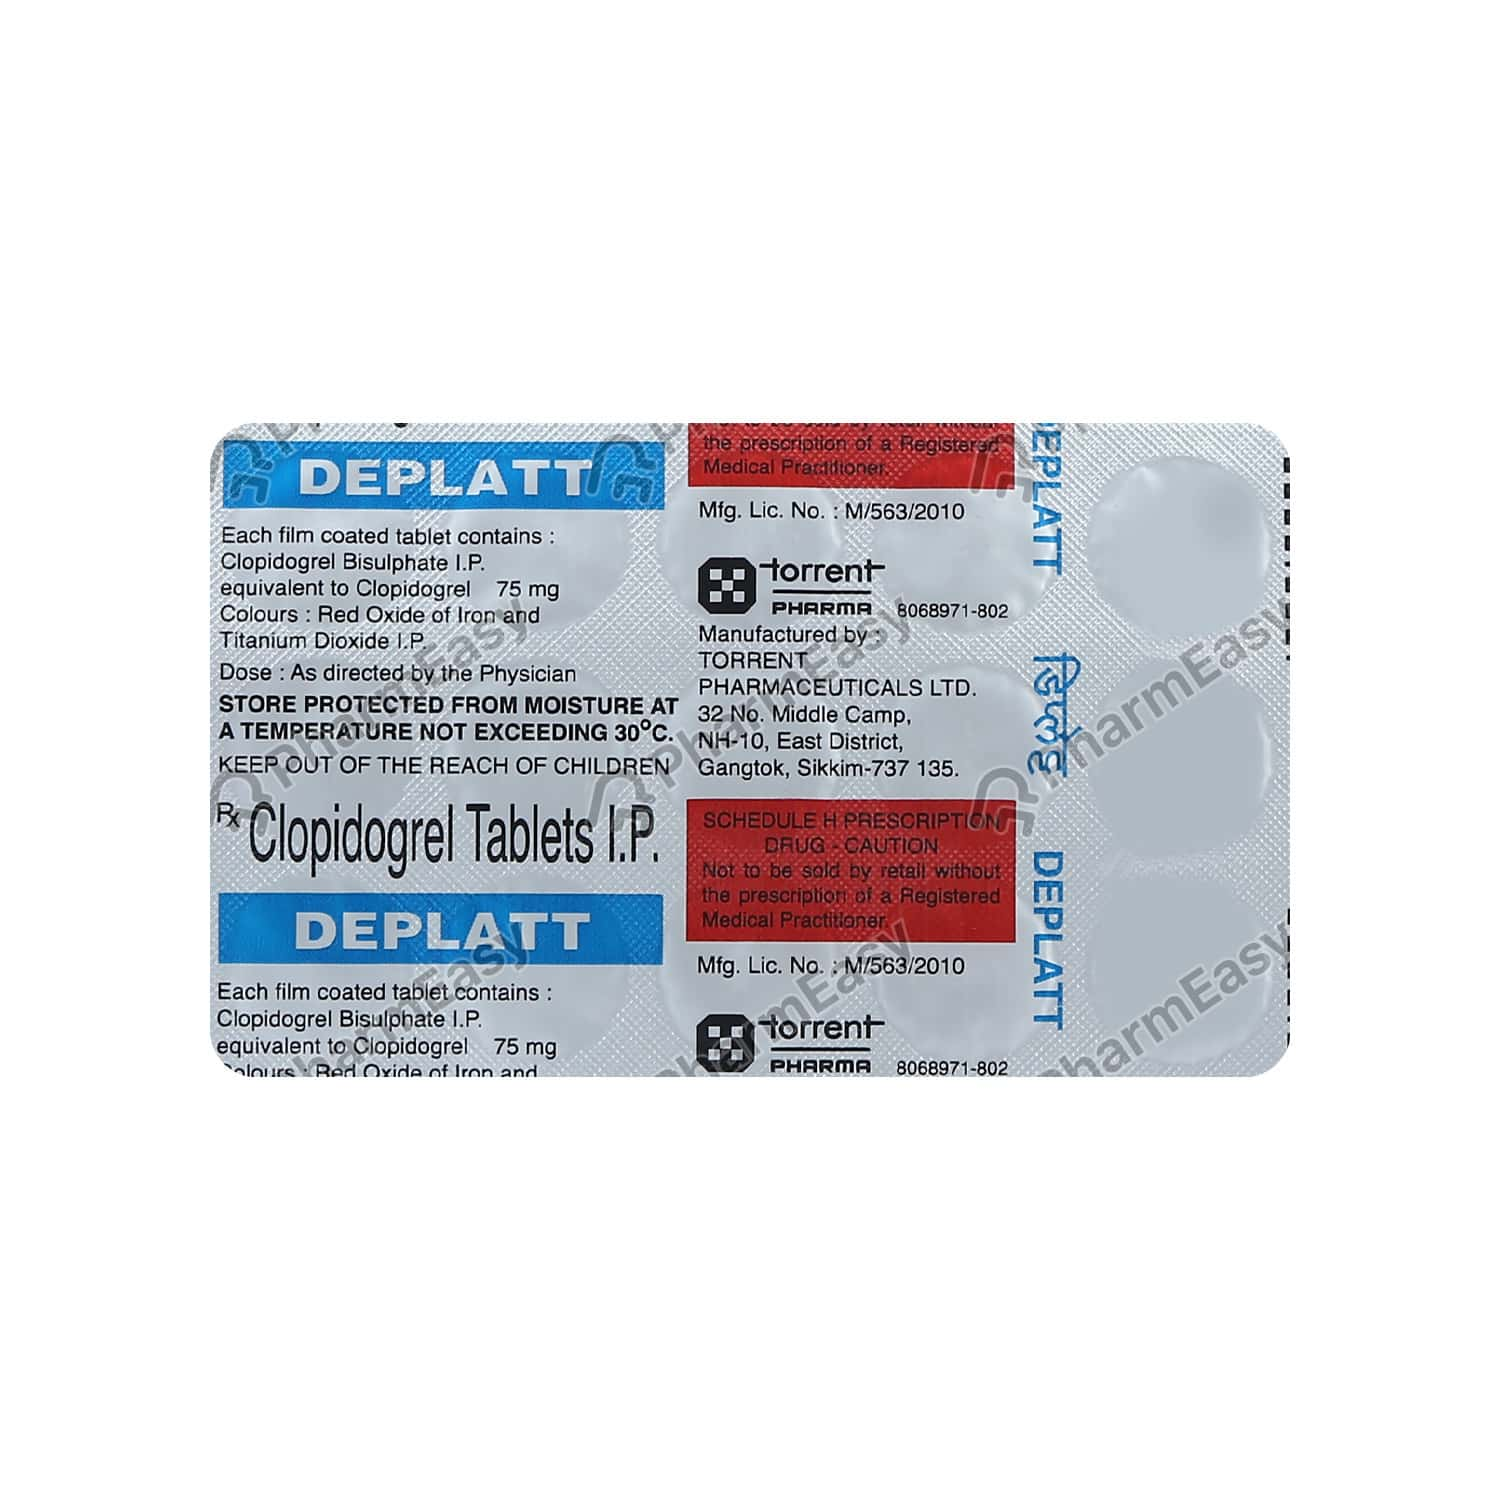 Deplatt 75mg Strip Of 15 Tablets